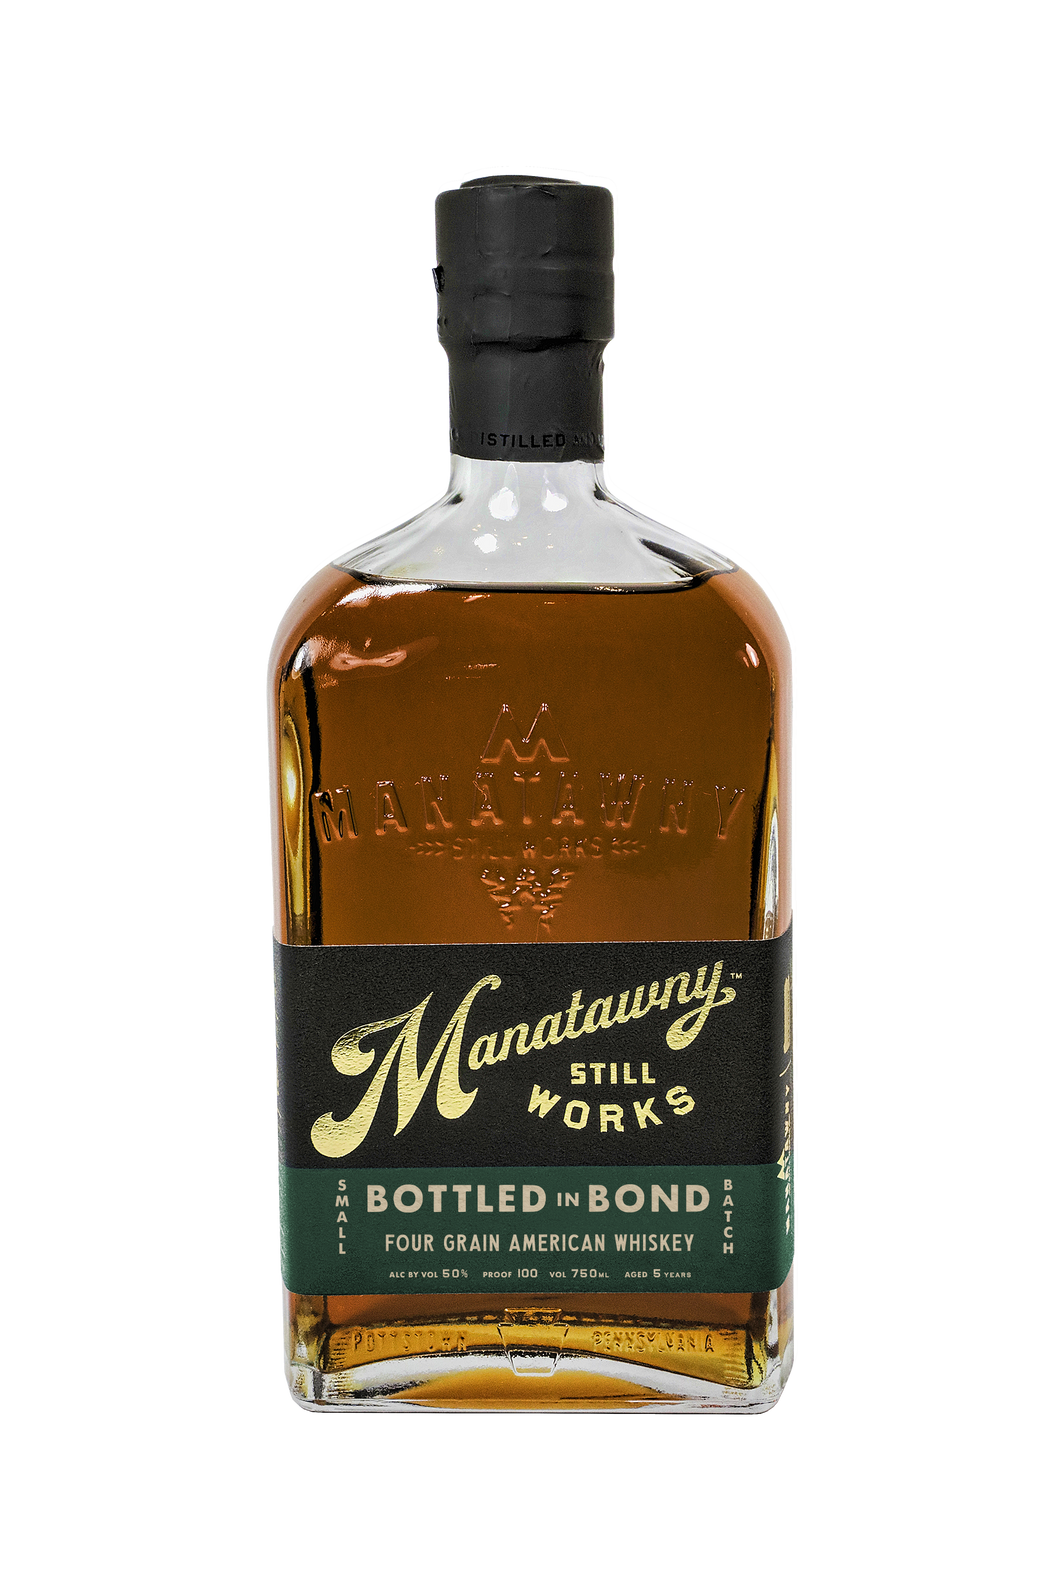 5-YEAR BOTTLED IN BOND